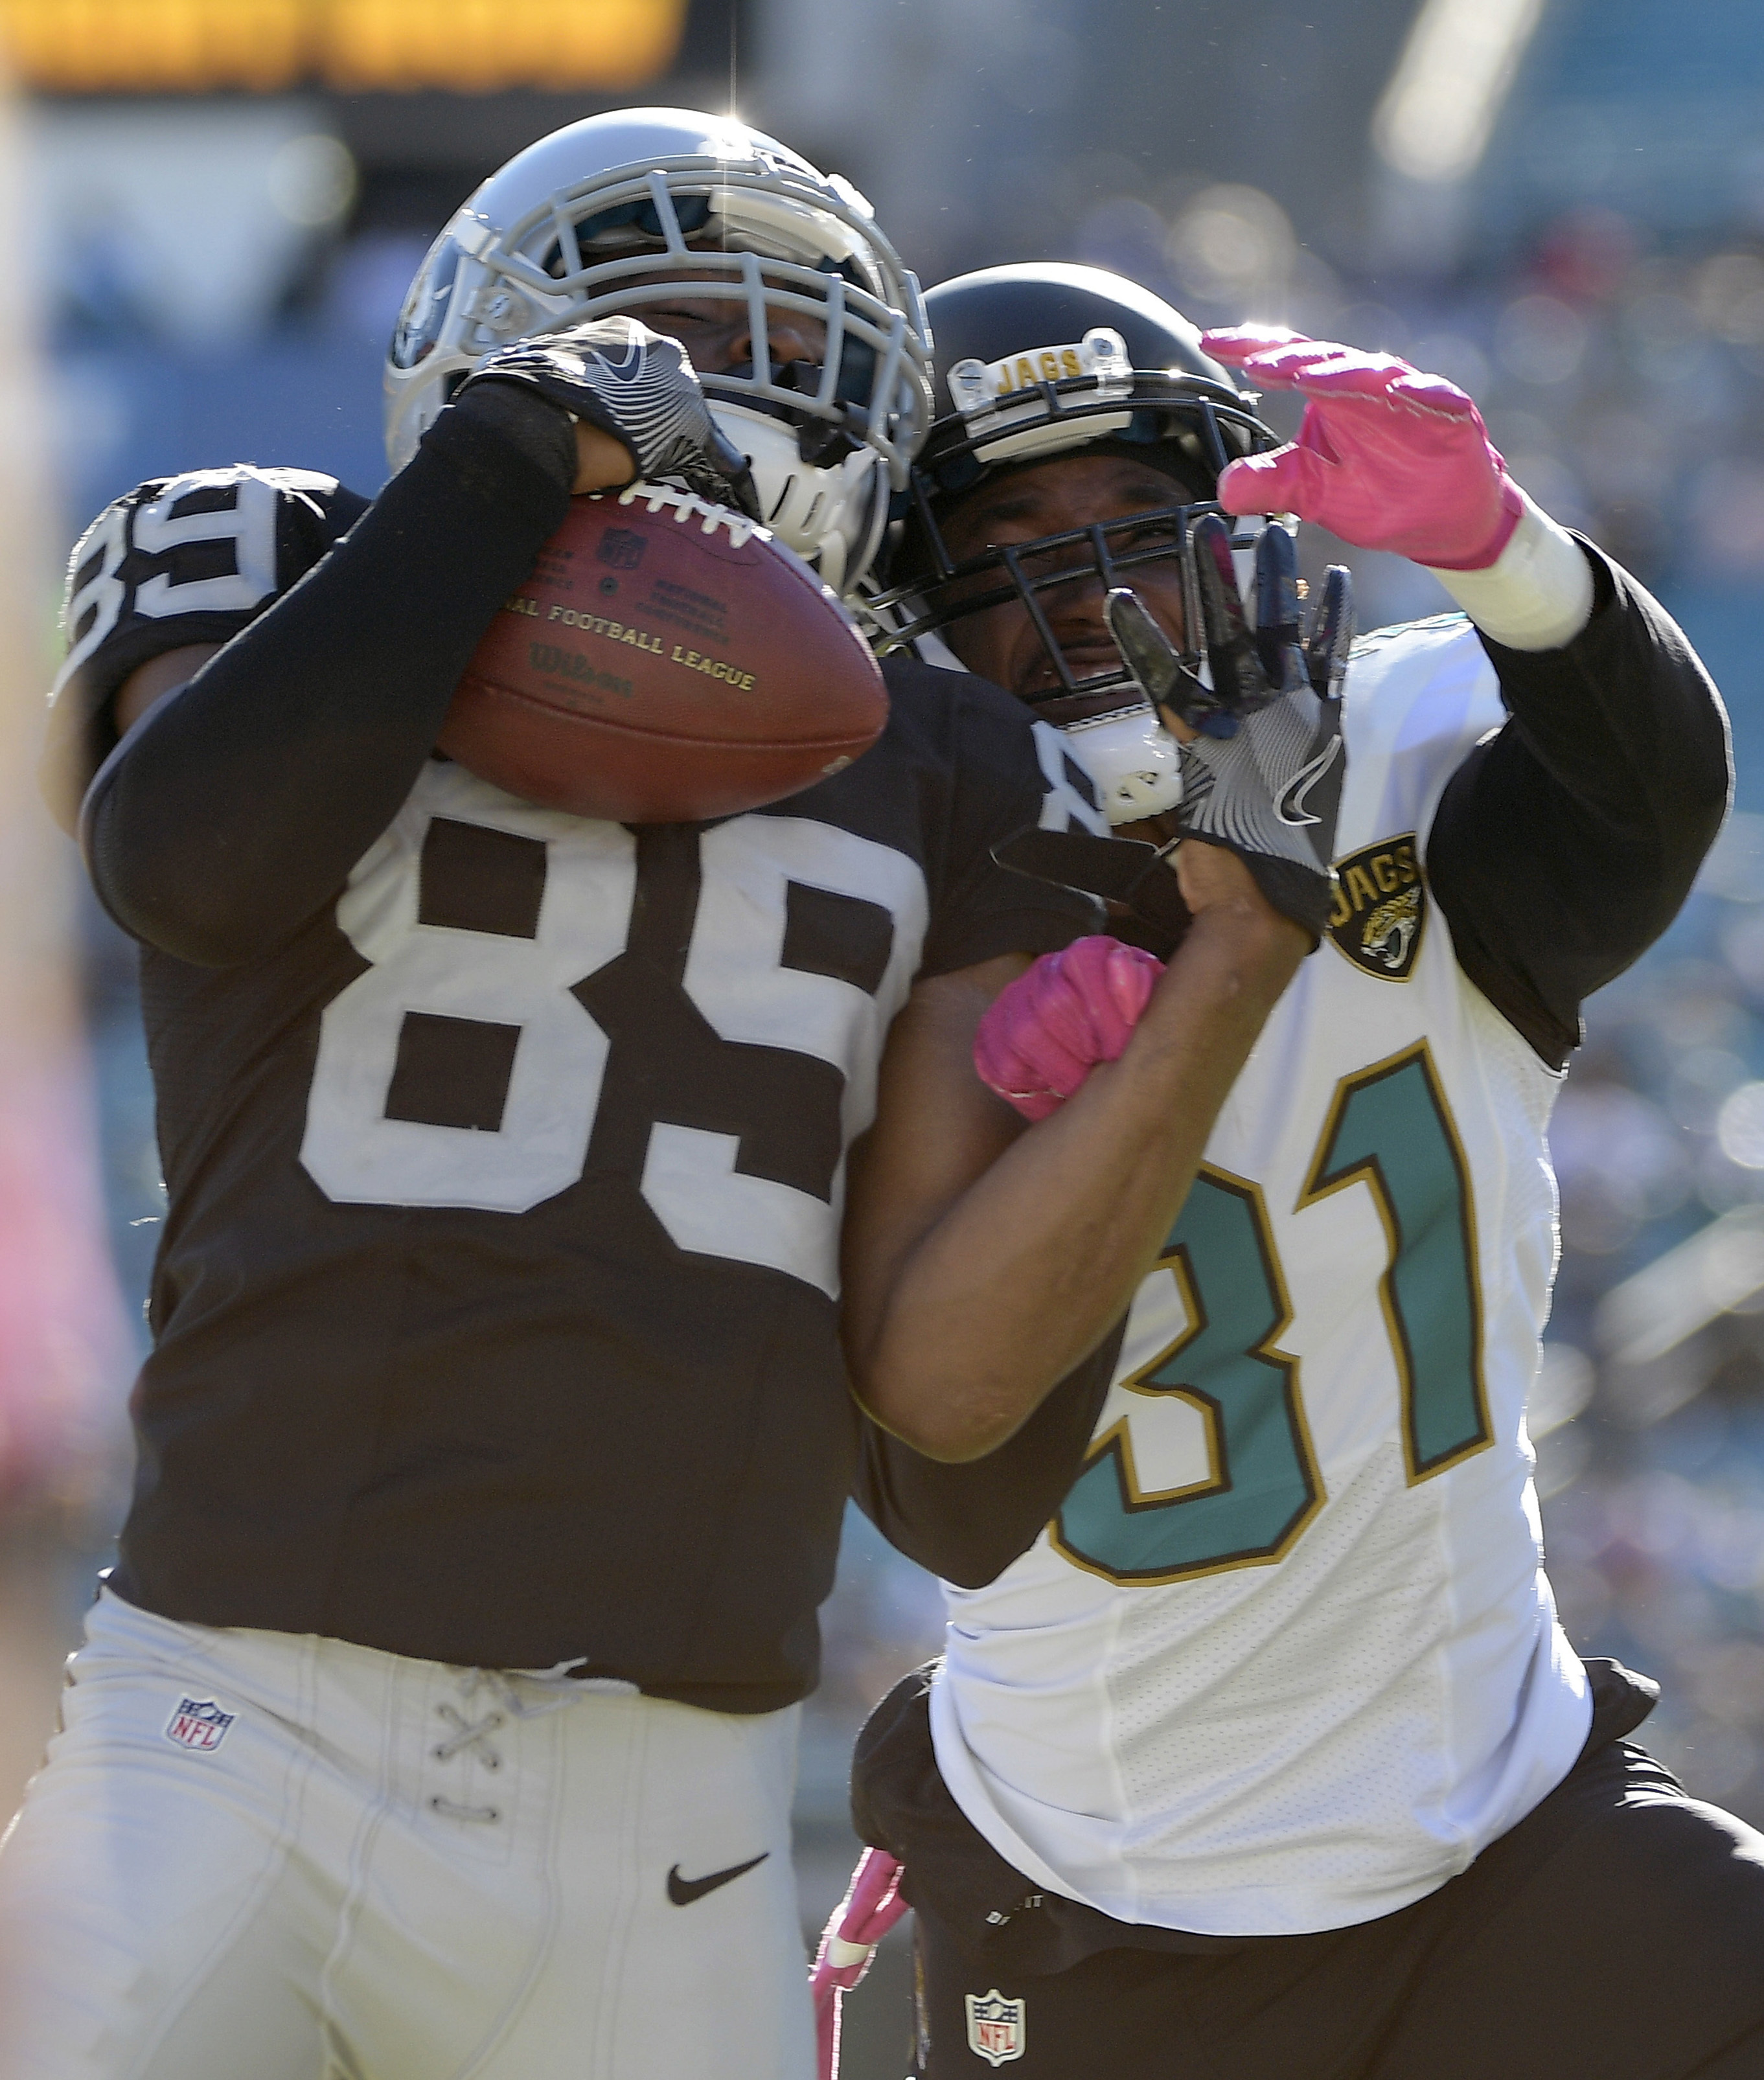 FILE - In this Oct. 23, 2016, file photo, Oakland Raiders wide receiver Amari Cooper (89) makes a catch in front of Jacksonville Jaguars cornerback Davon House (31) during the fourth quarter of an NFL football game in Jacksonville, Fla. Tampa Bay first-ro